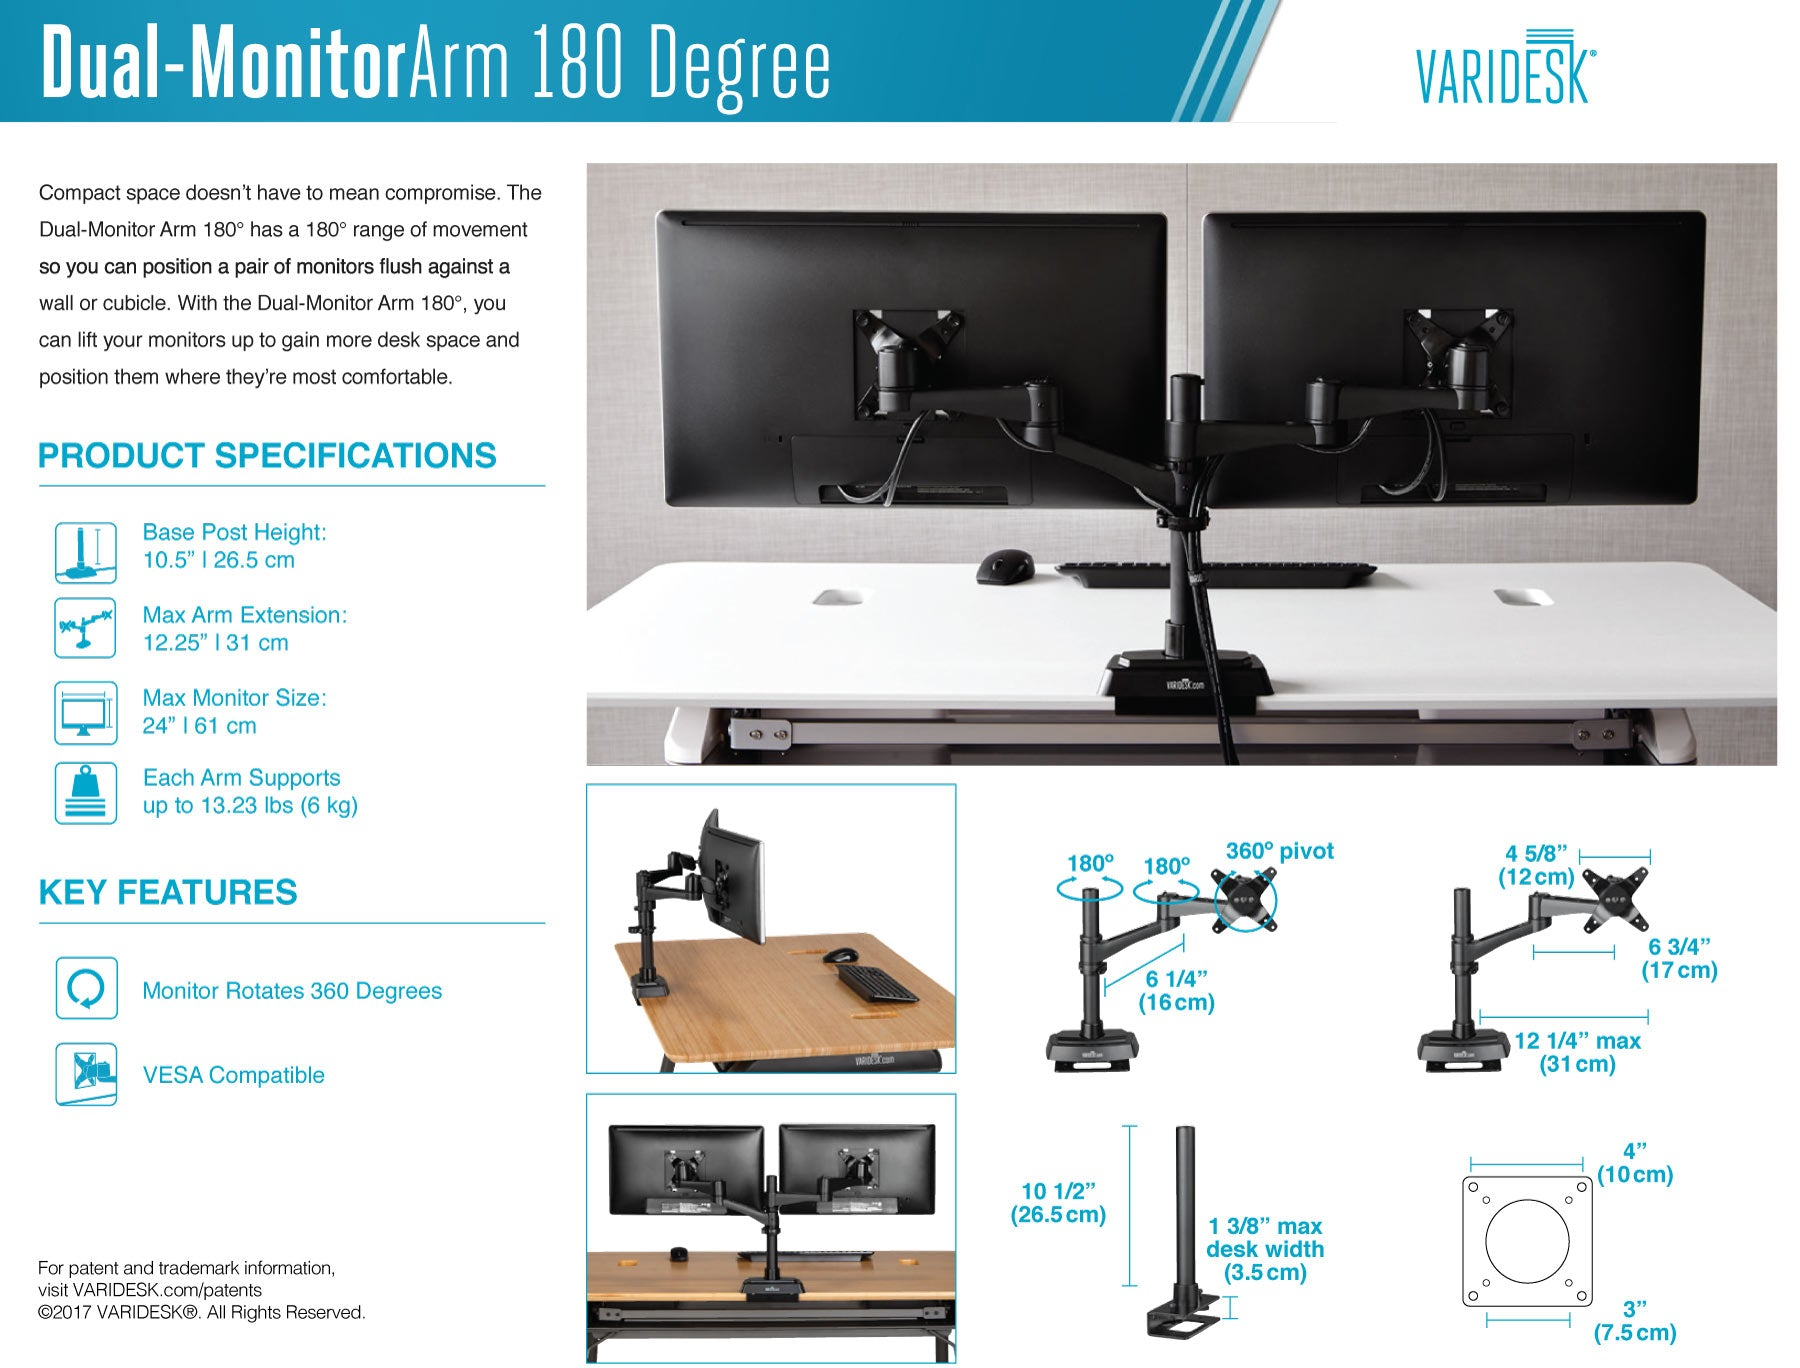 varidesk-dual-monitor-arm-180